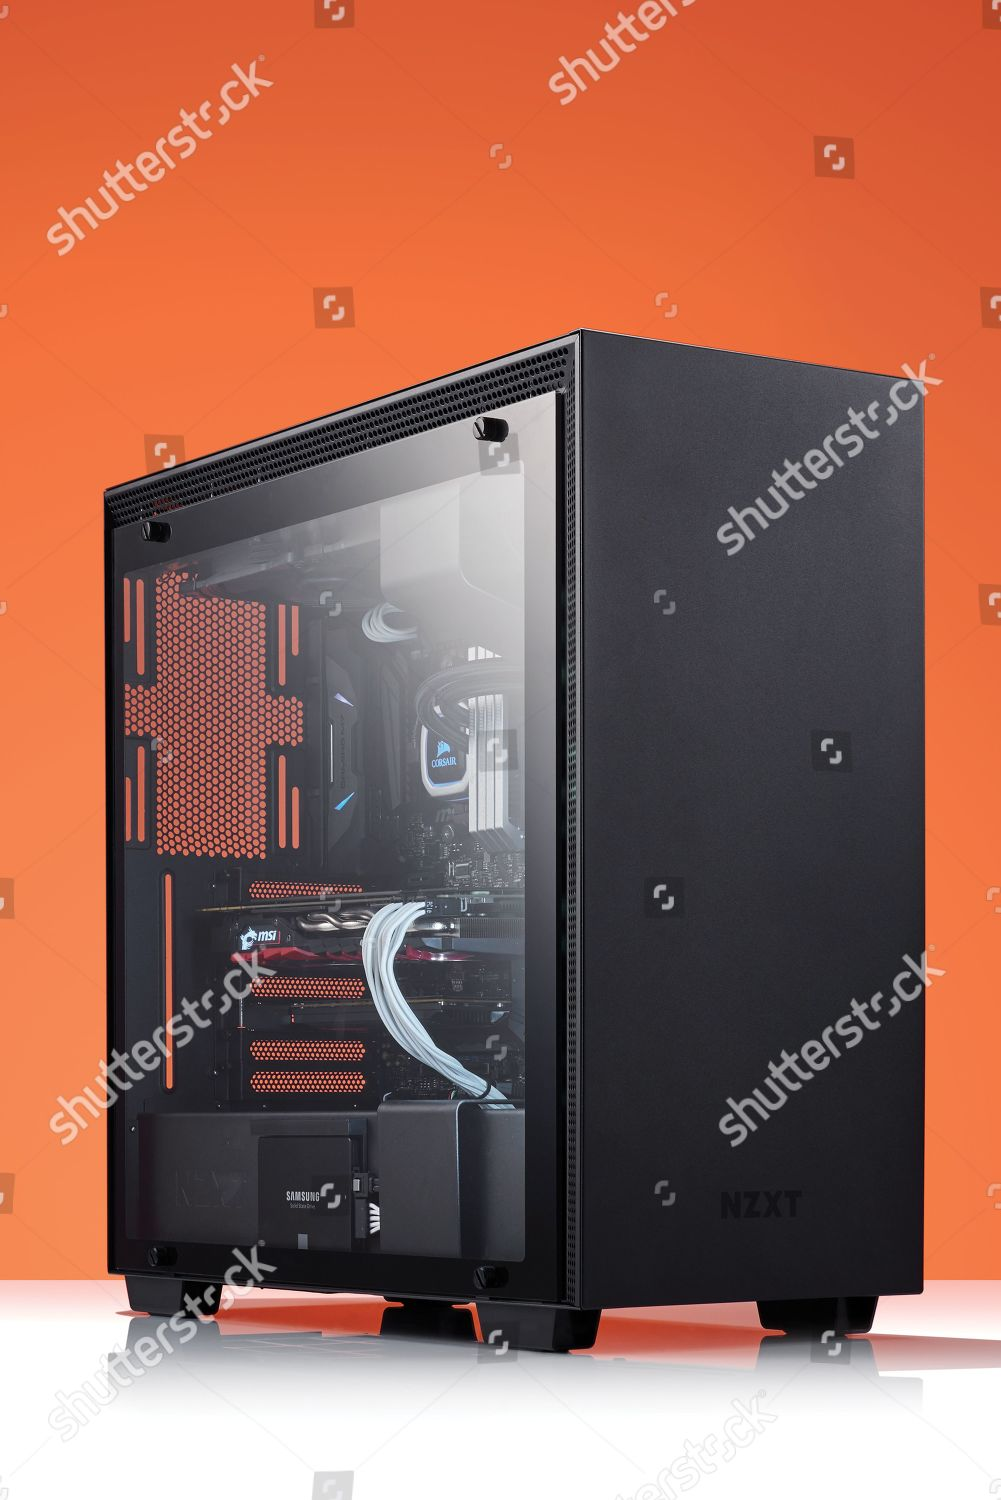 Custom Build Gaming Pc Nzxt H700i Case Editorial Stock Photo Stock Image Shutterstock